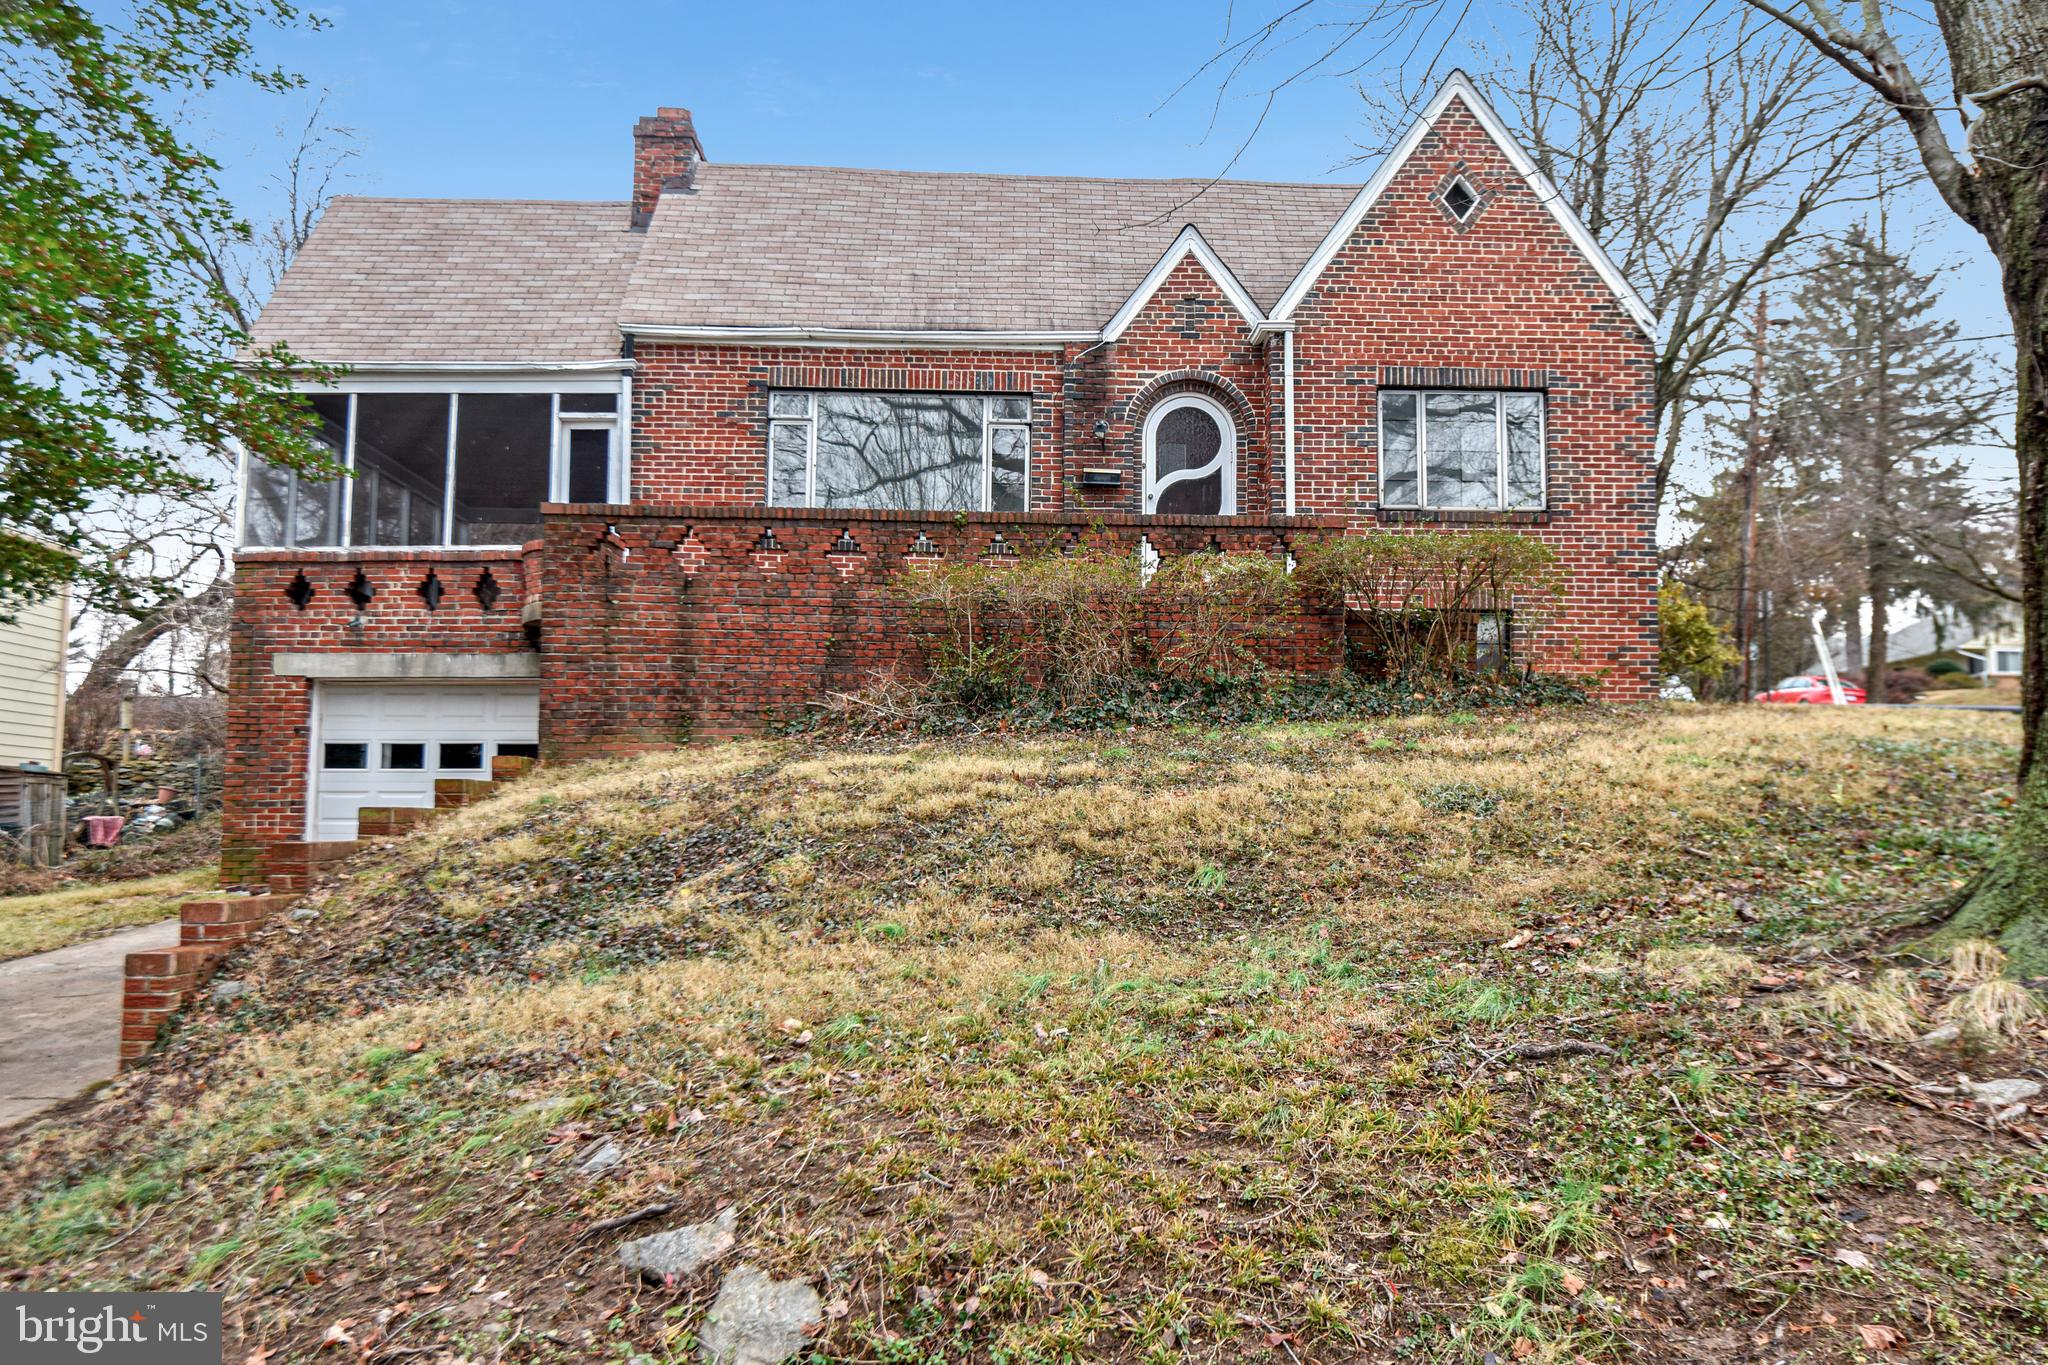 1001 HIGHLAND DRIVE, SILVER SPRING, MD 20910